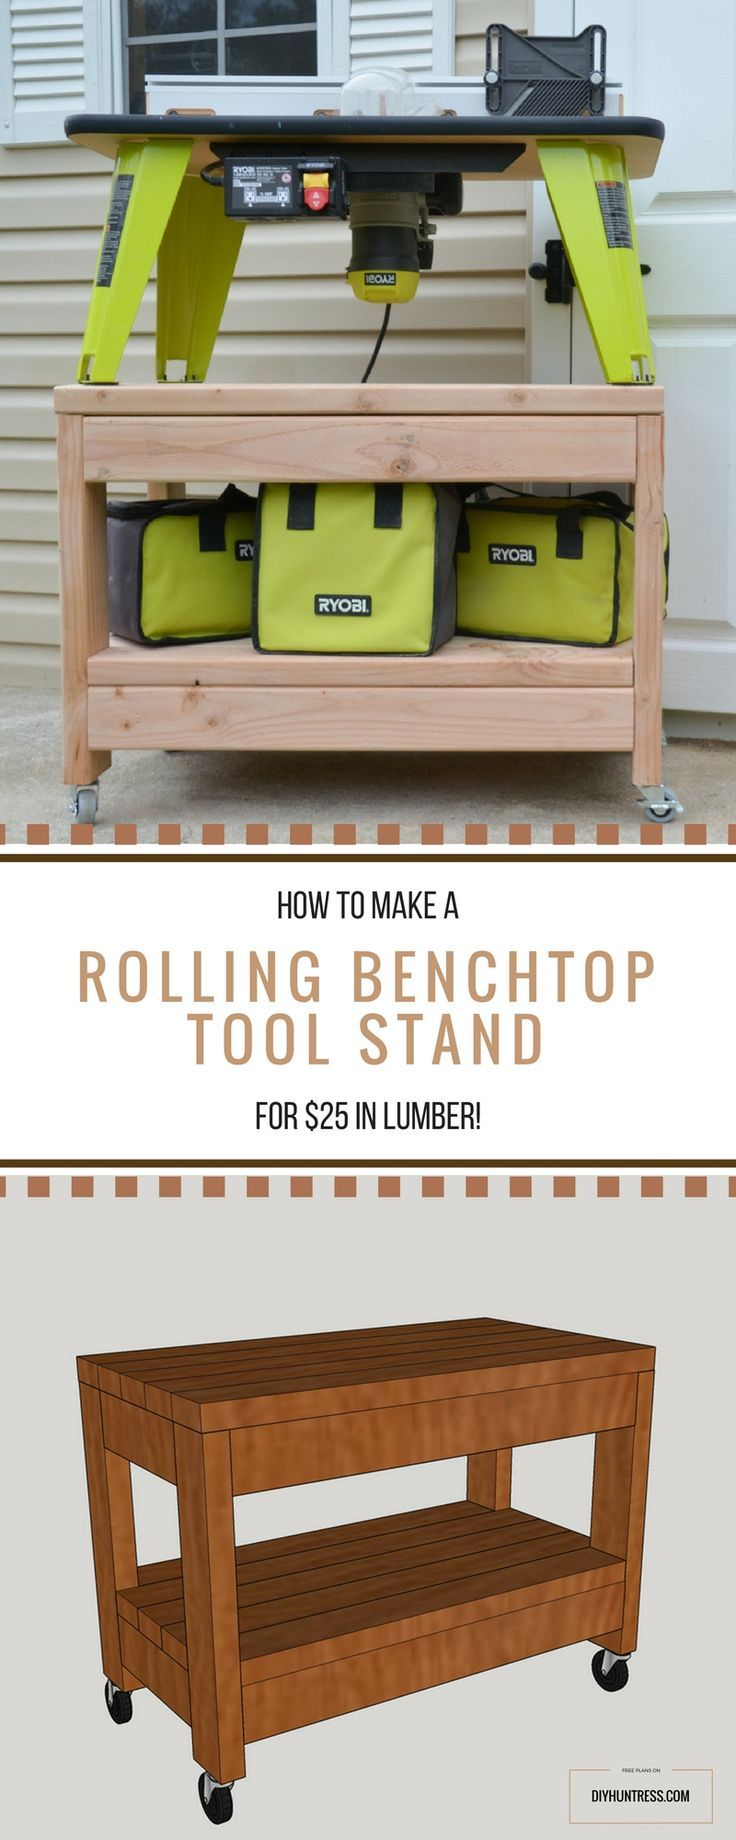 17 best ideas about ryobi router table on pinterest for How to make a router table stand